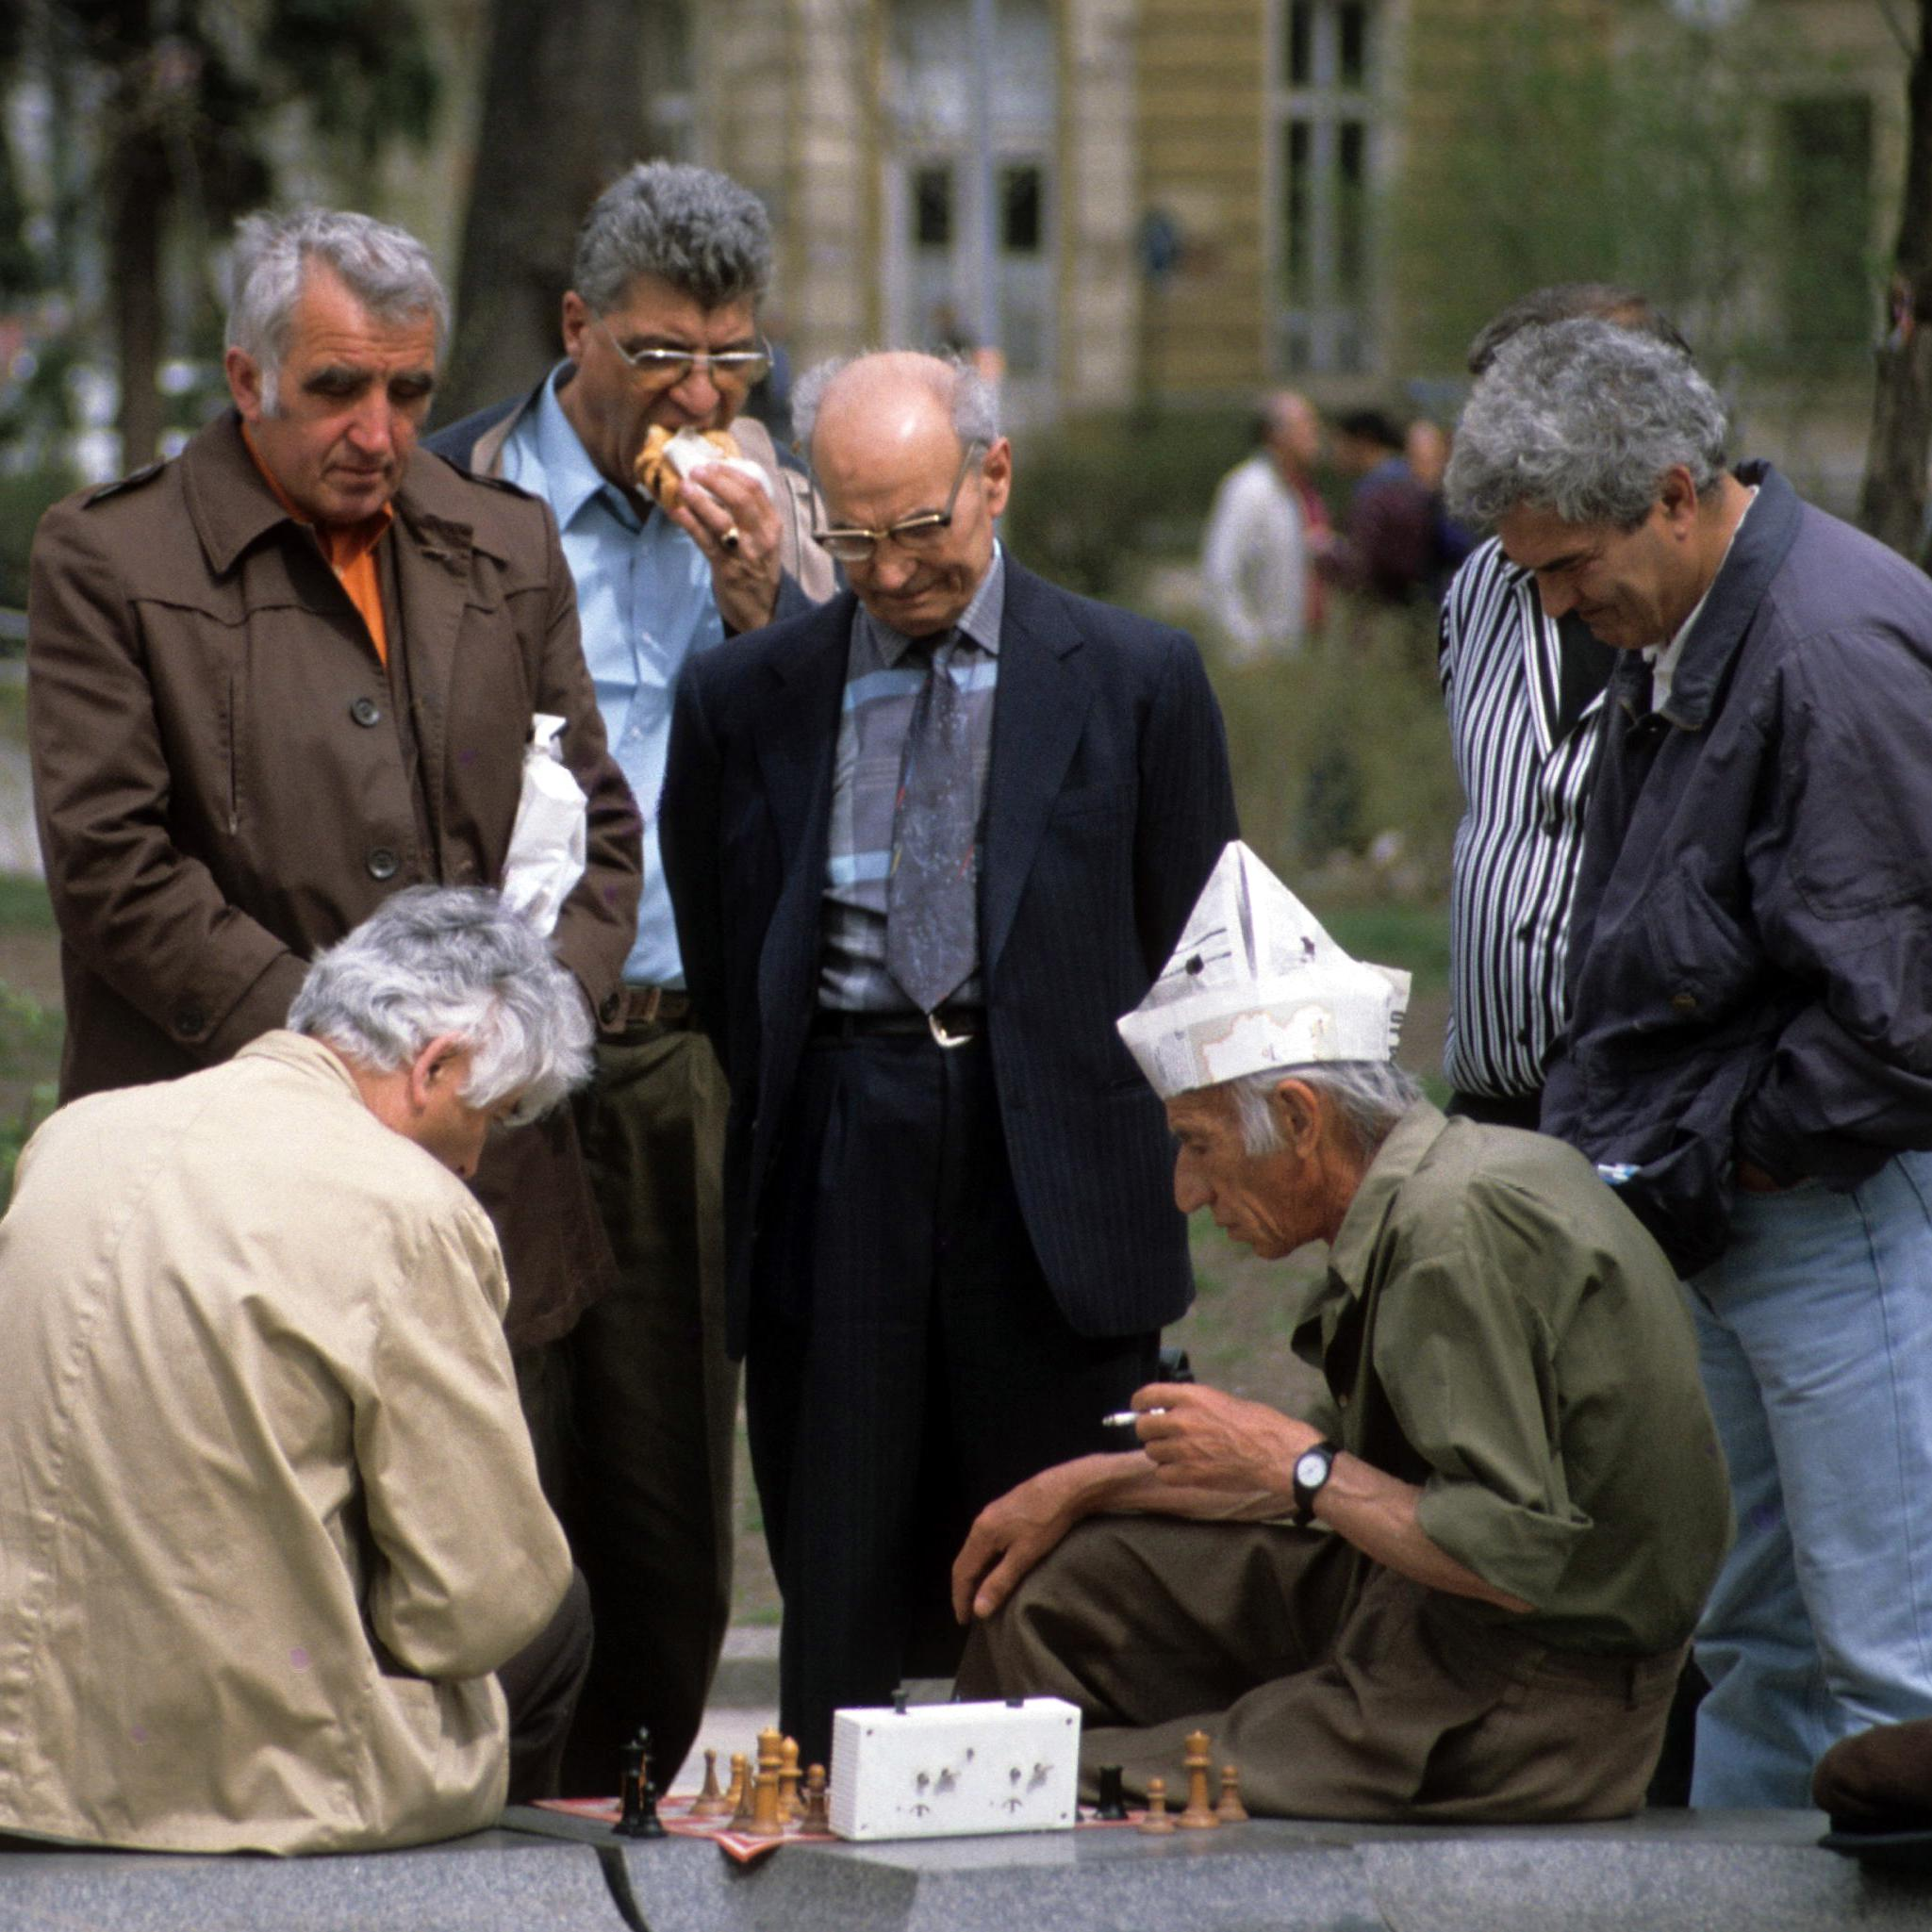 Men Playing Chess on the street in Bulgaria